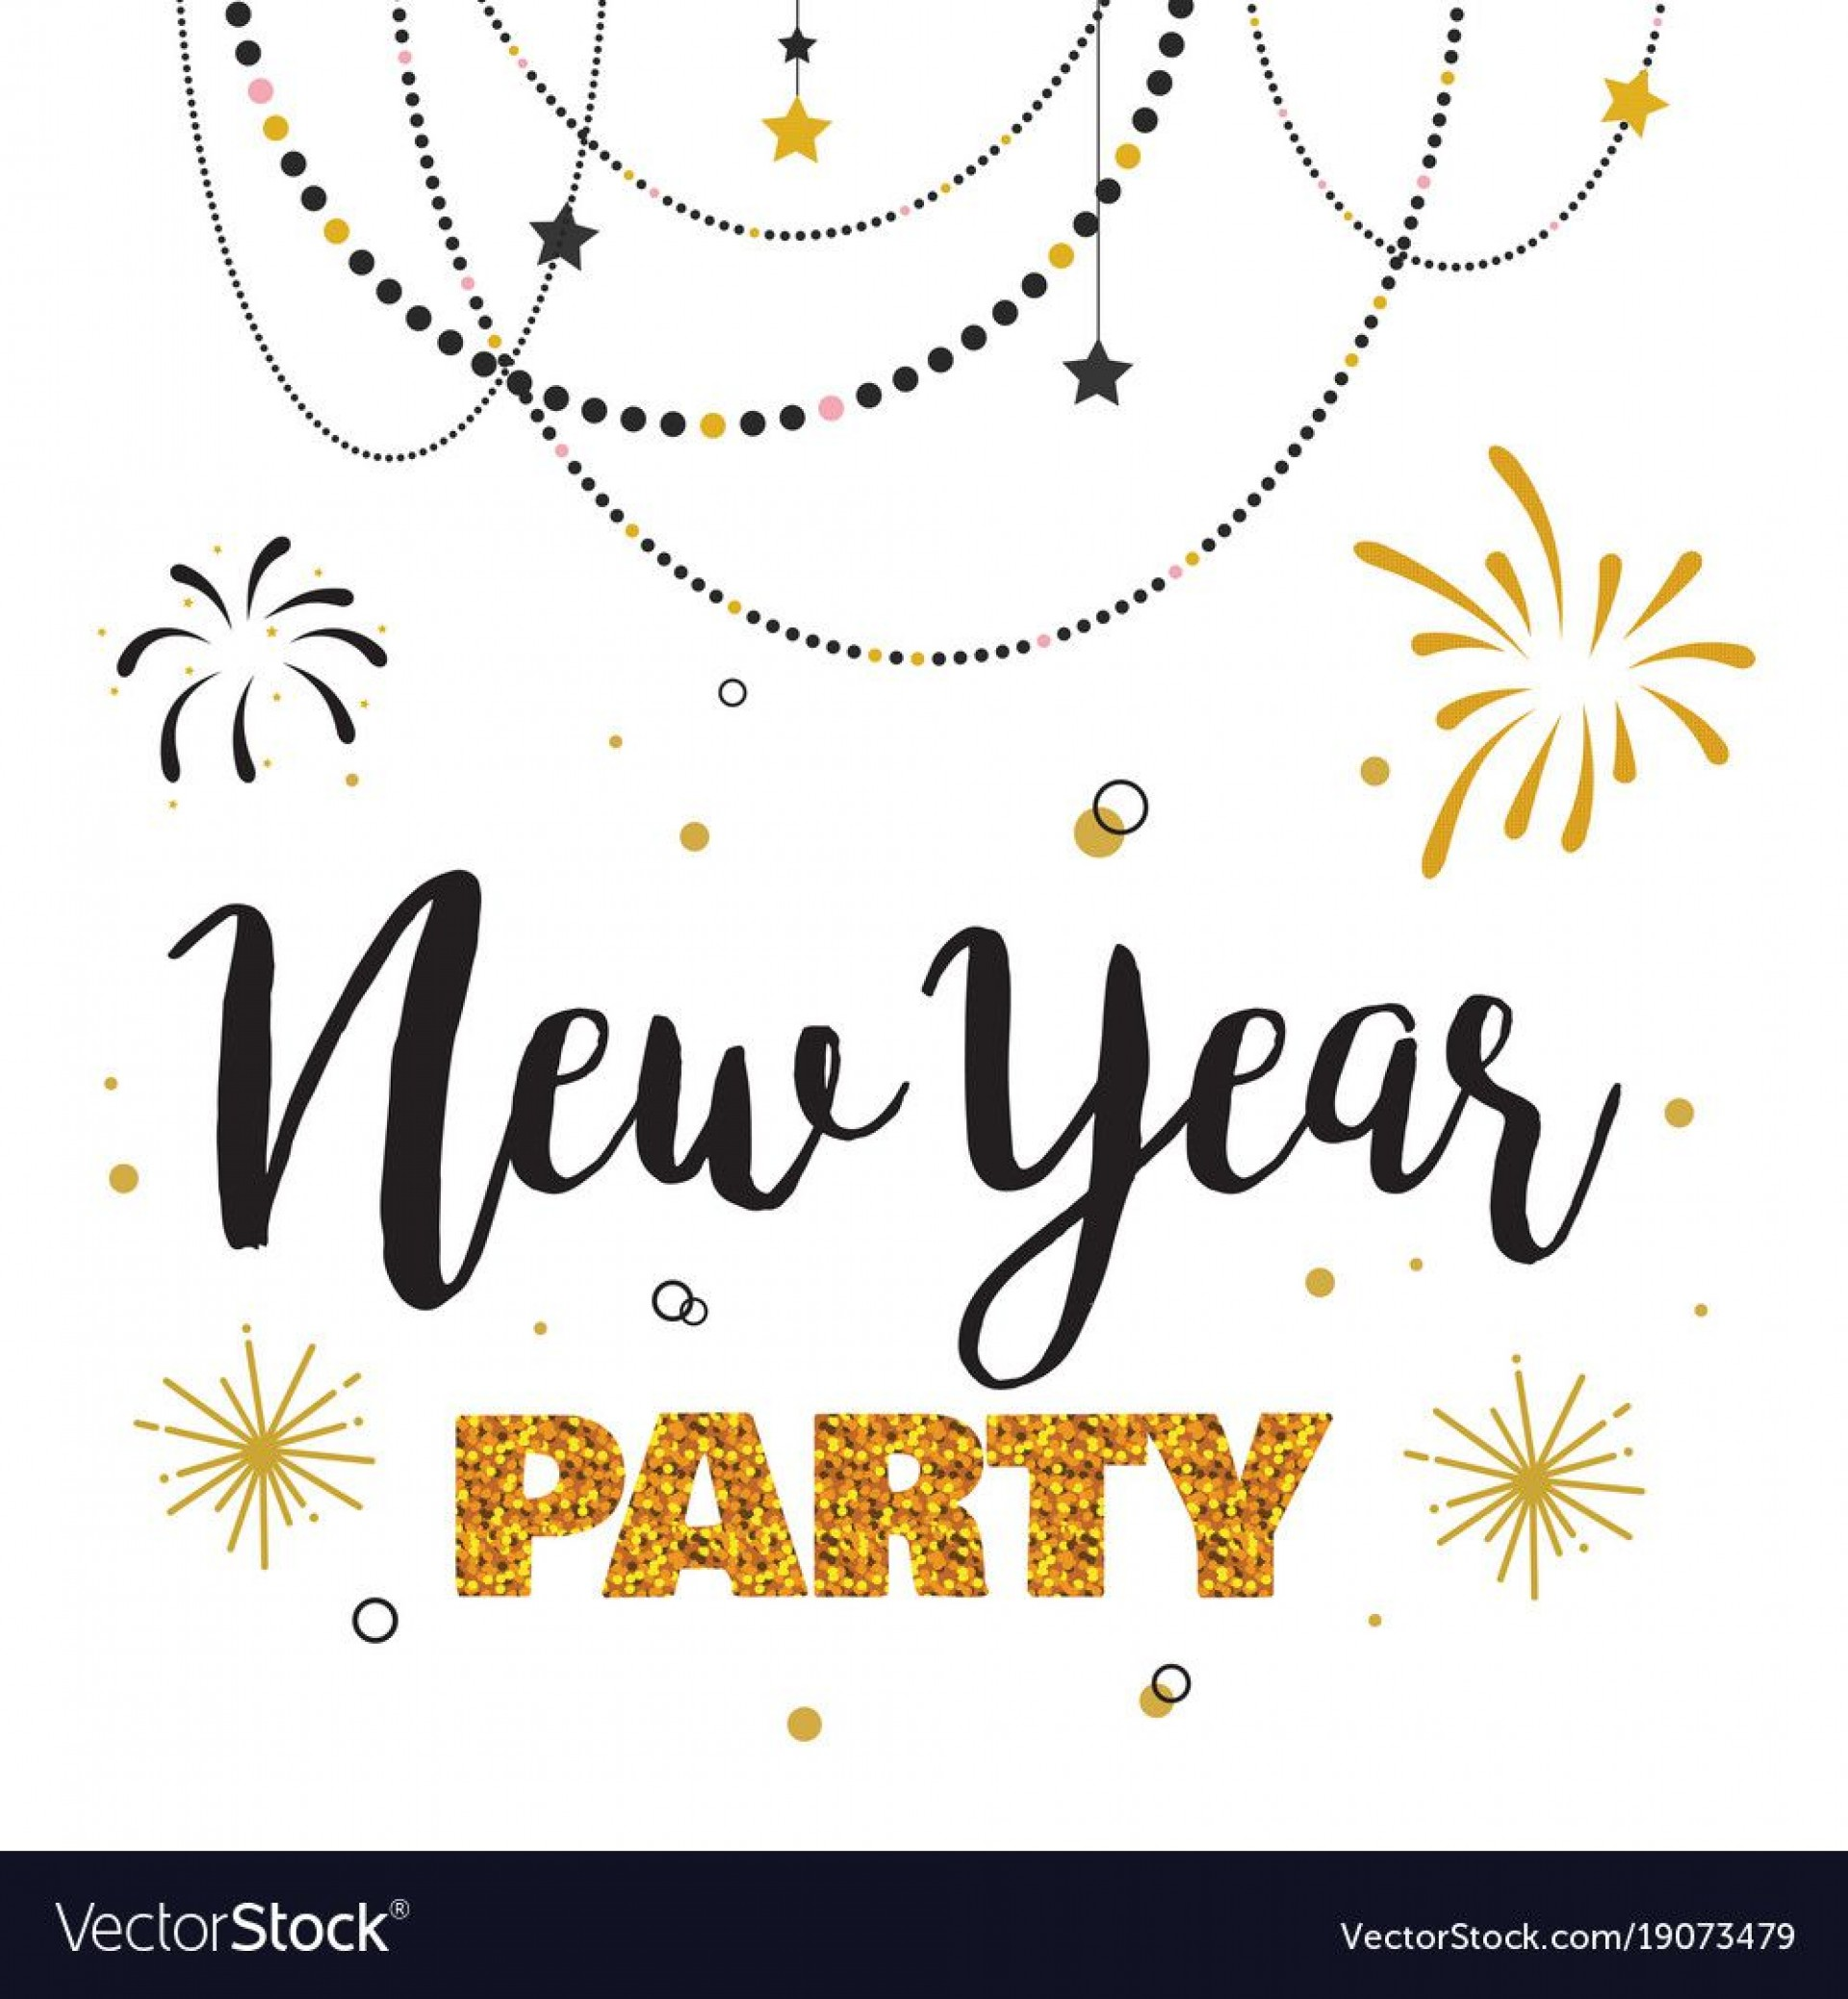 006 Magnificent New Year Eve Invitation Template Photo  Party Free Word1920